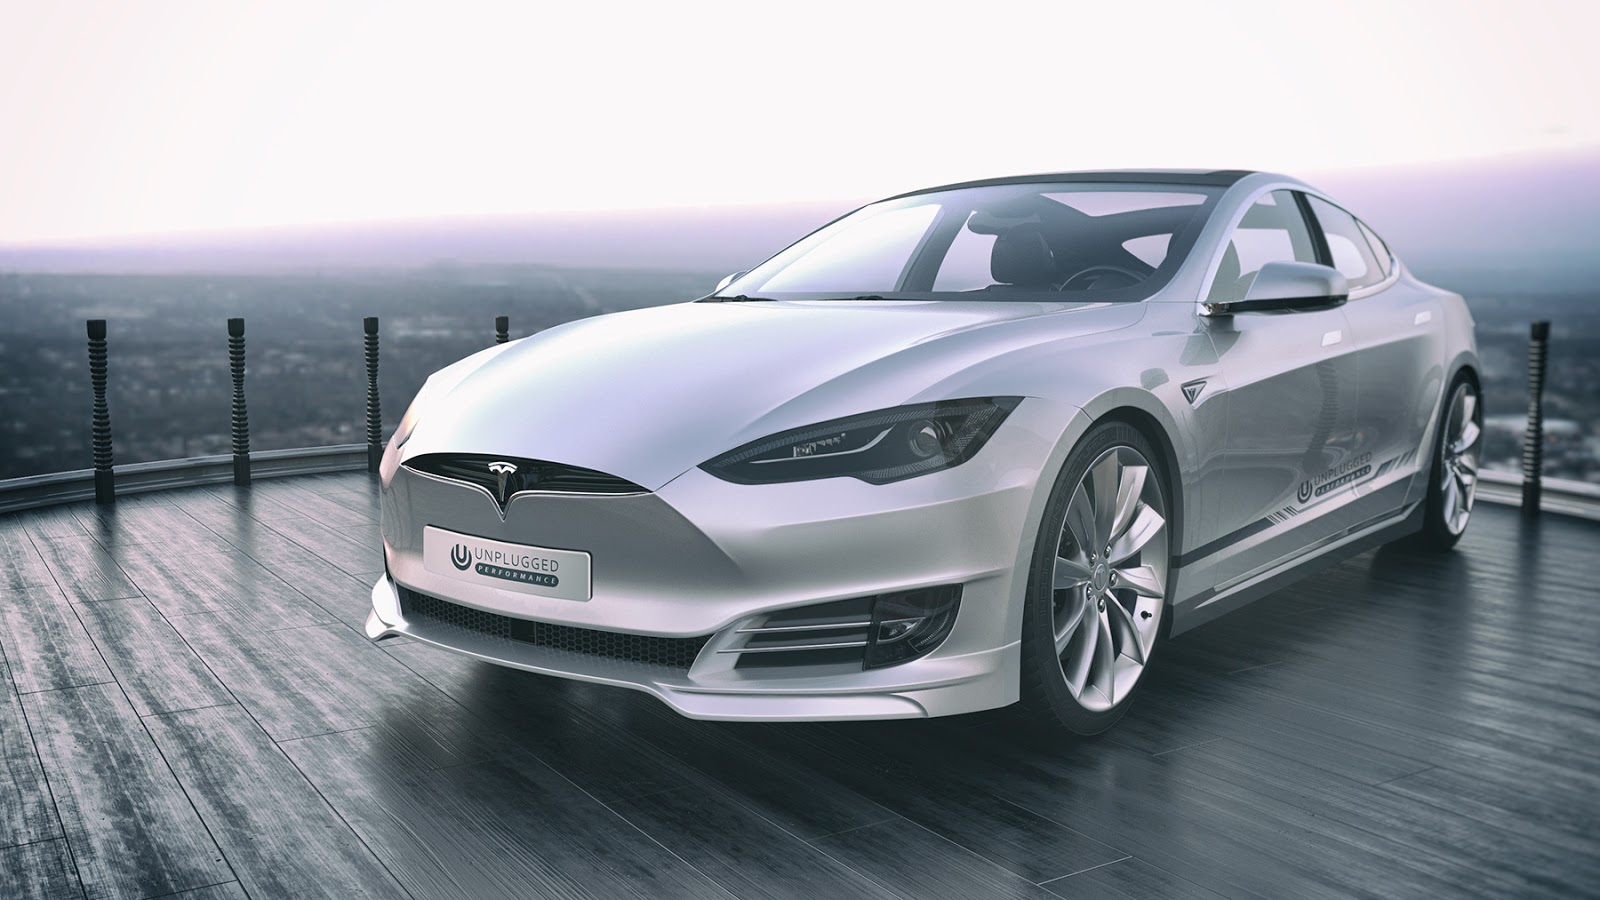 On April 12 2016 Tesla Announced The Model S Face Lift An Upgraded Front Design Of And Headlights To Match Those X